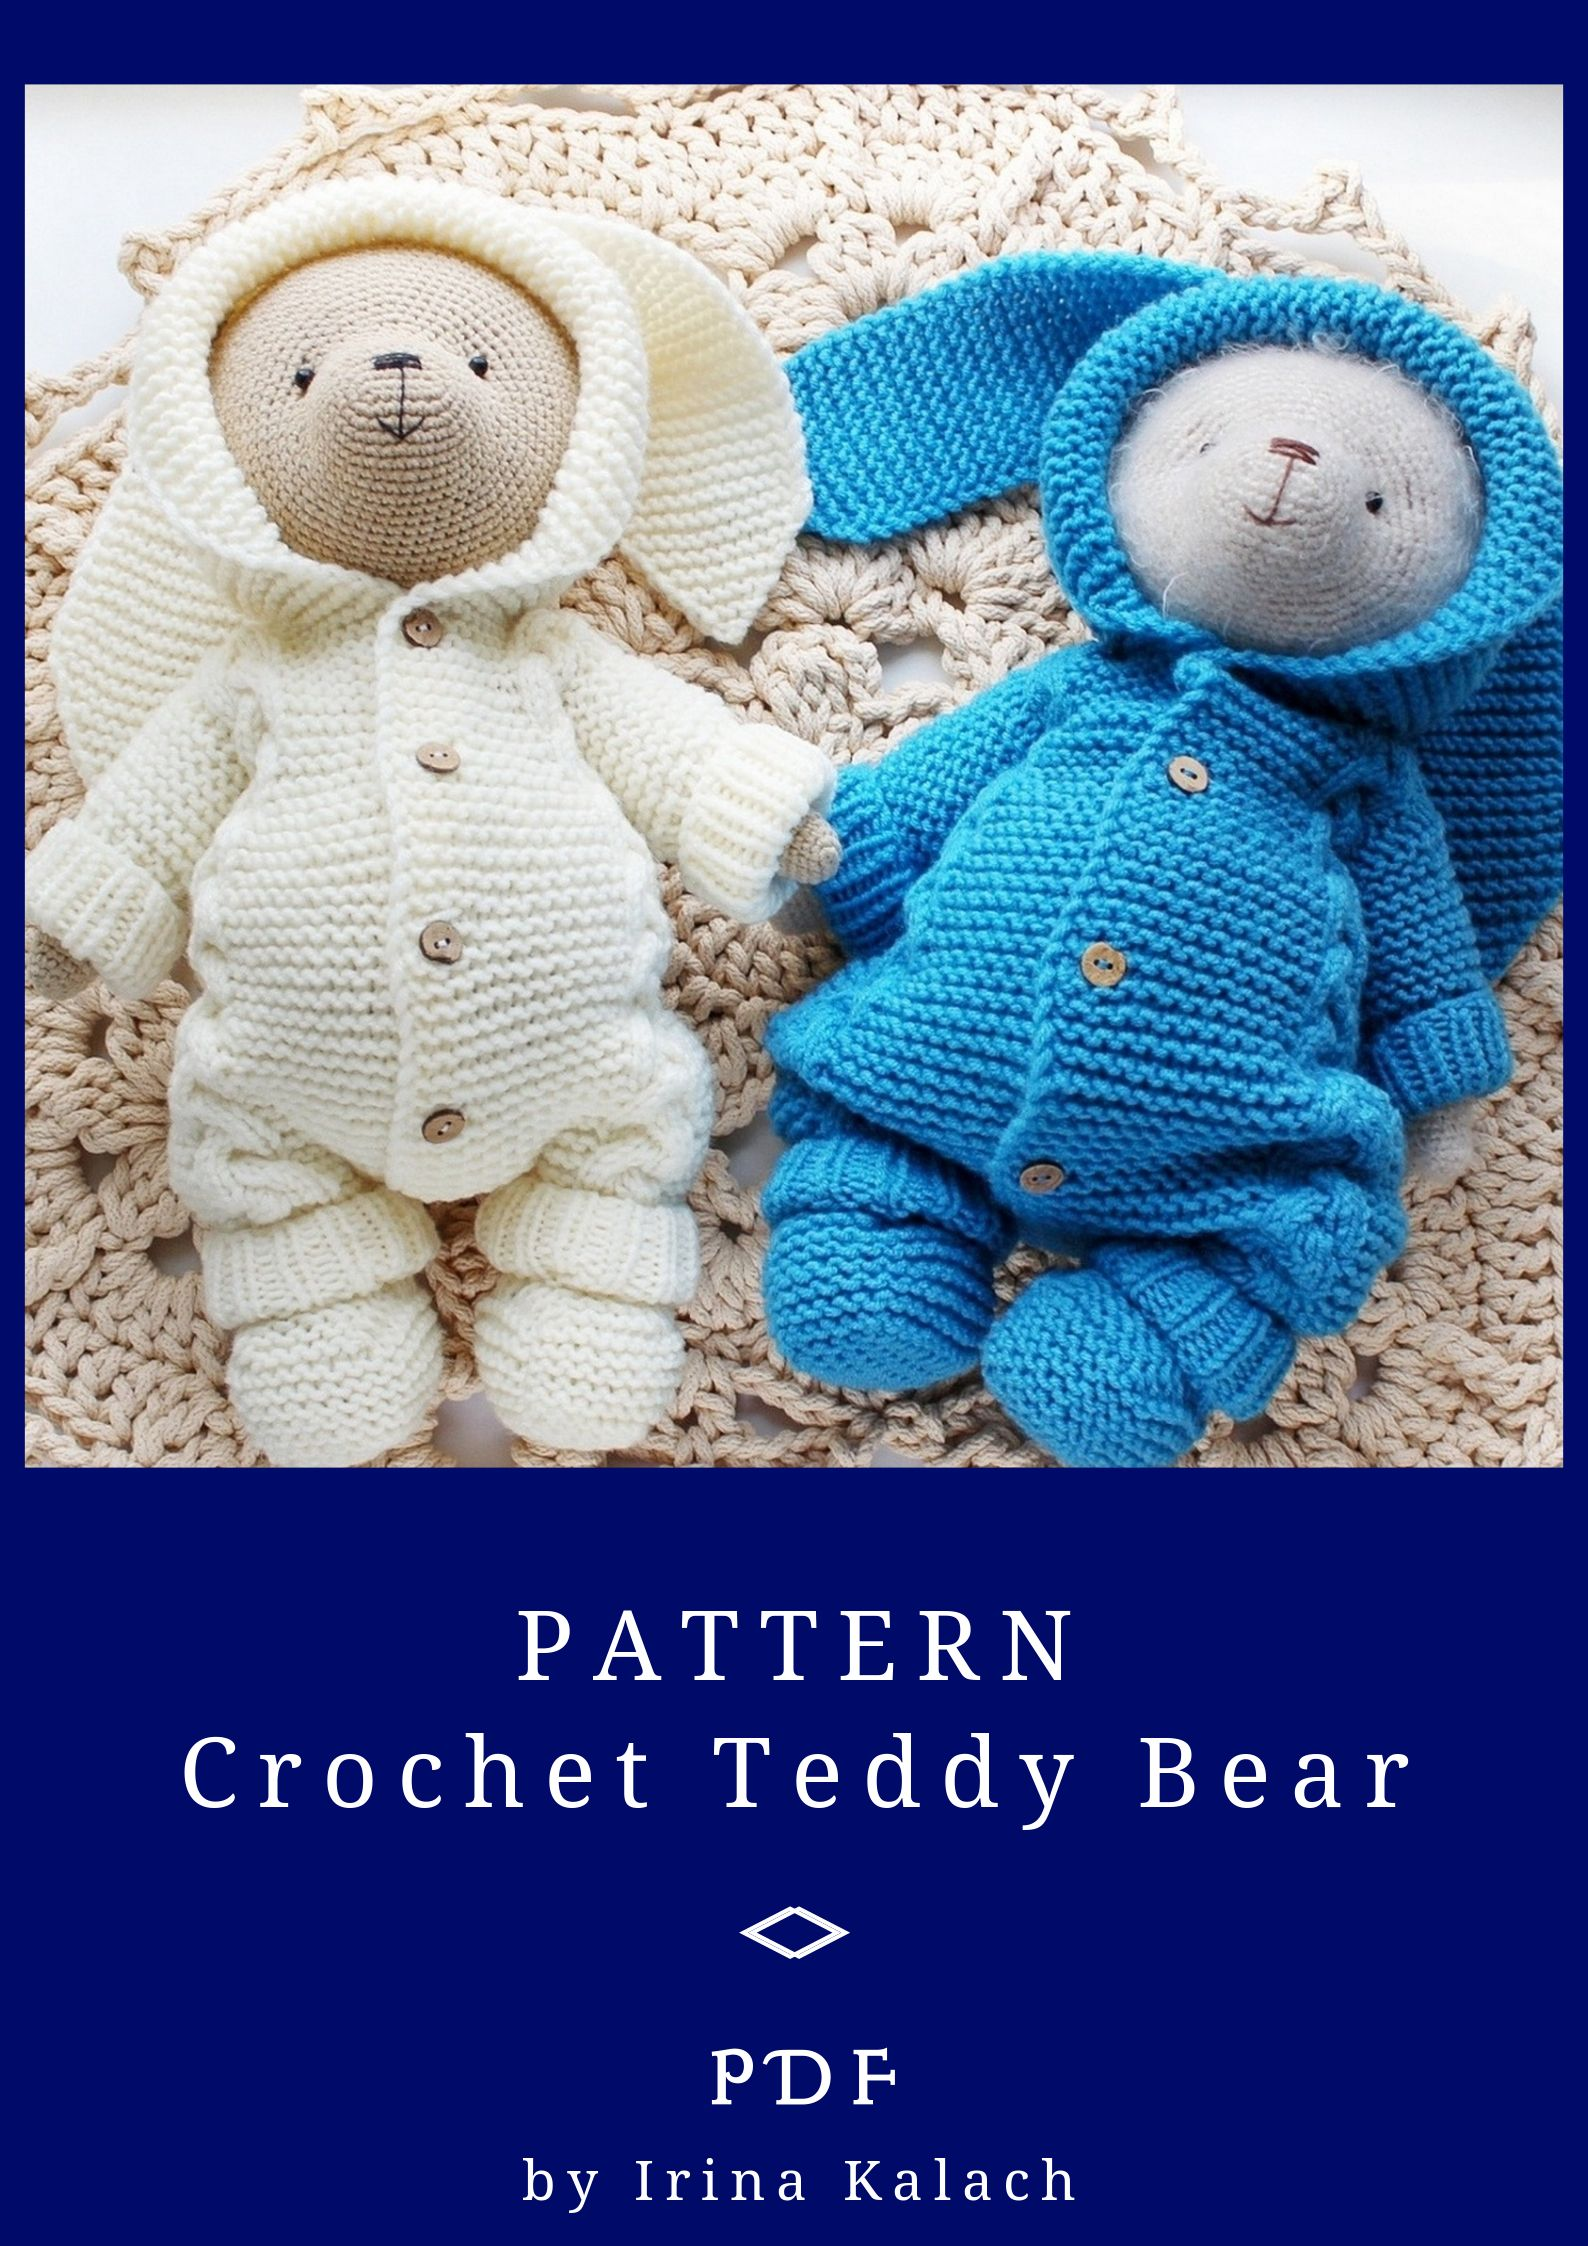 Bear Crochet 45de7fa5ad49f2 | Crochet bear patterns, Crochet teddy ... | 2246x1588